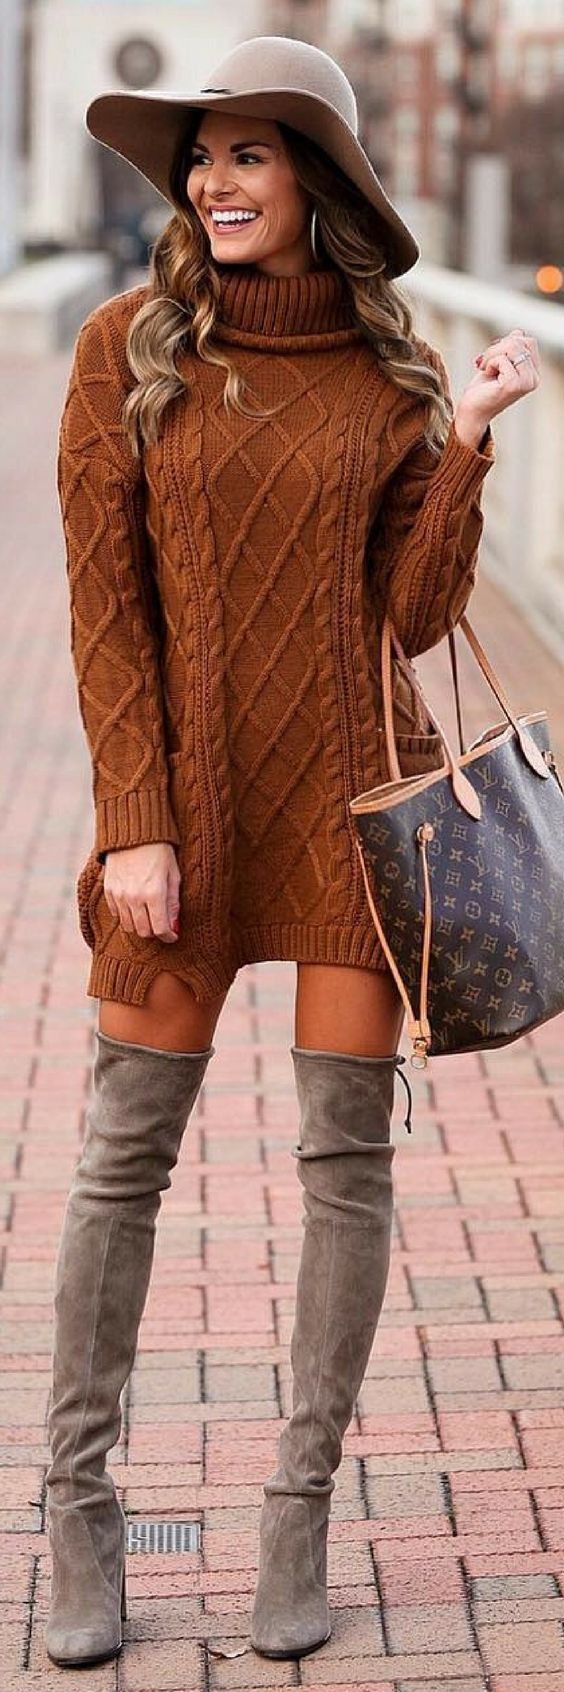 25 Of The Most Amazing Casual Winter Outfit Ideas https://ecstasymodels.blog/2018/01/06/25-amazing-casual-winter-outfit-ideas/?utm_campaign=coschedule&utm_source=pinterest&utm_medium=Ecstasy%20Models%20-%20Womens%20Fashion%20and%20Streetstyle&utm_content=25%20Of%20The%20Most%20Amazing%20Casual%20Winter%20Outfit%20Ideas